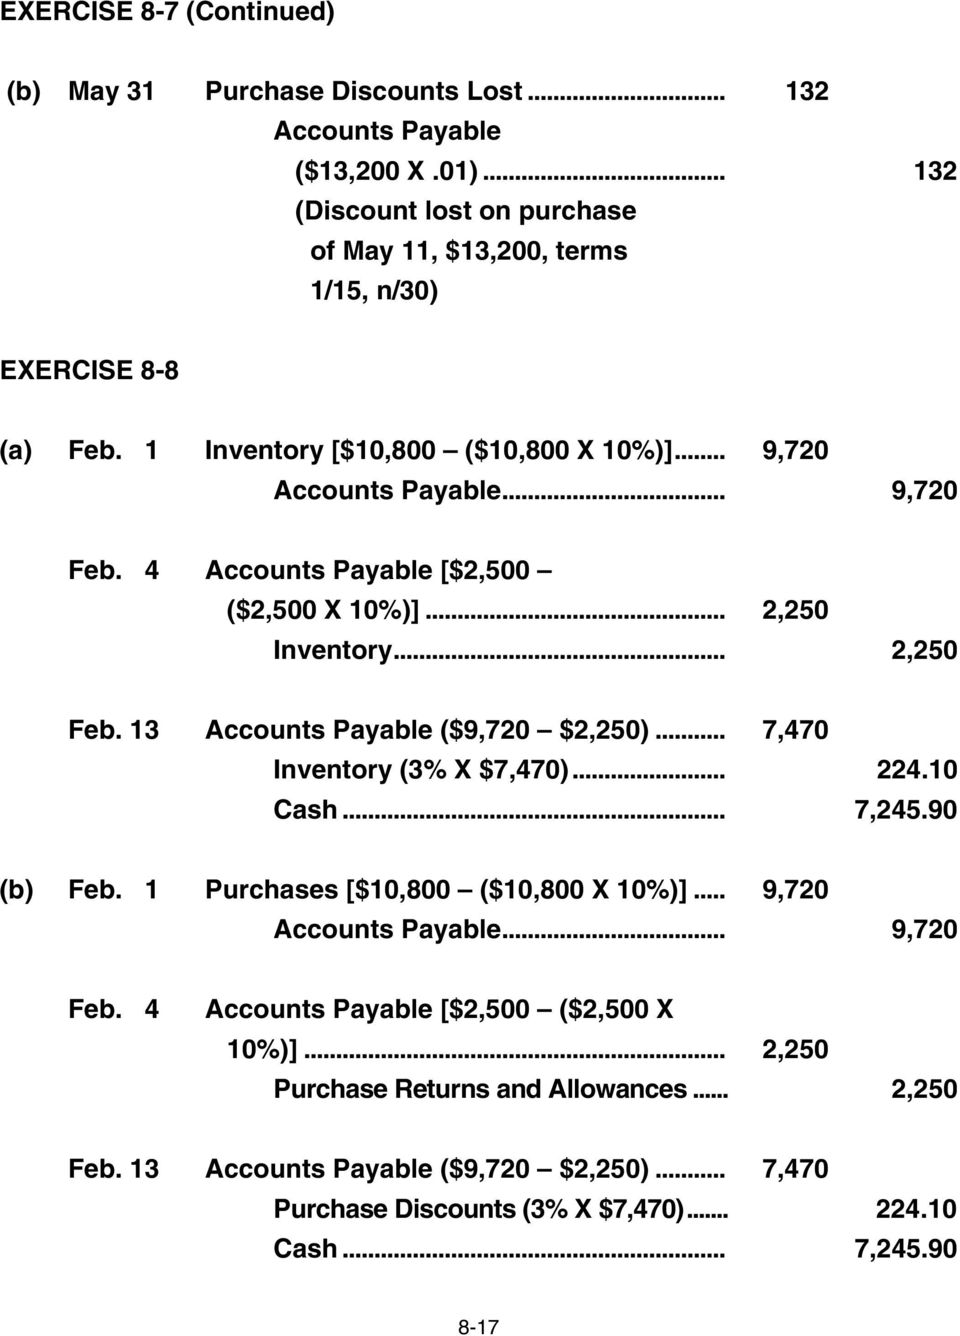 4 Accounts Payable [$2,500 ($2,500 X 10%)]... 2,250 Inventory... 2,250 Feb. 13 Accounts Payable ($9,720 $2,250)... 7,470 Inventory (3% X $7,470)... 224.10 Cash... 7,245.90 (b) Feb.